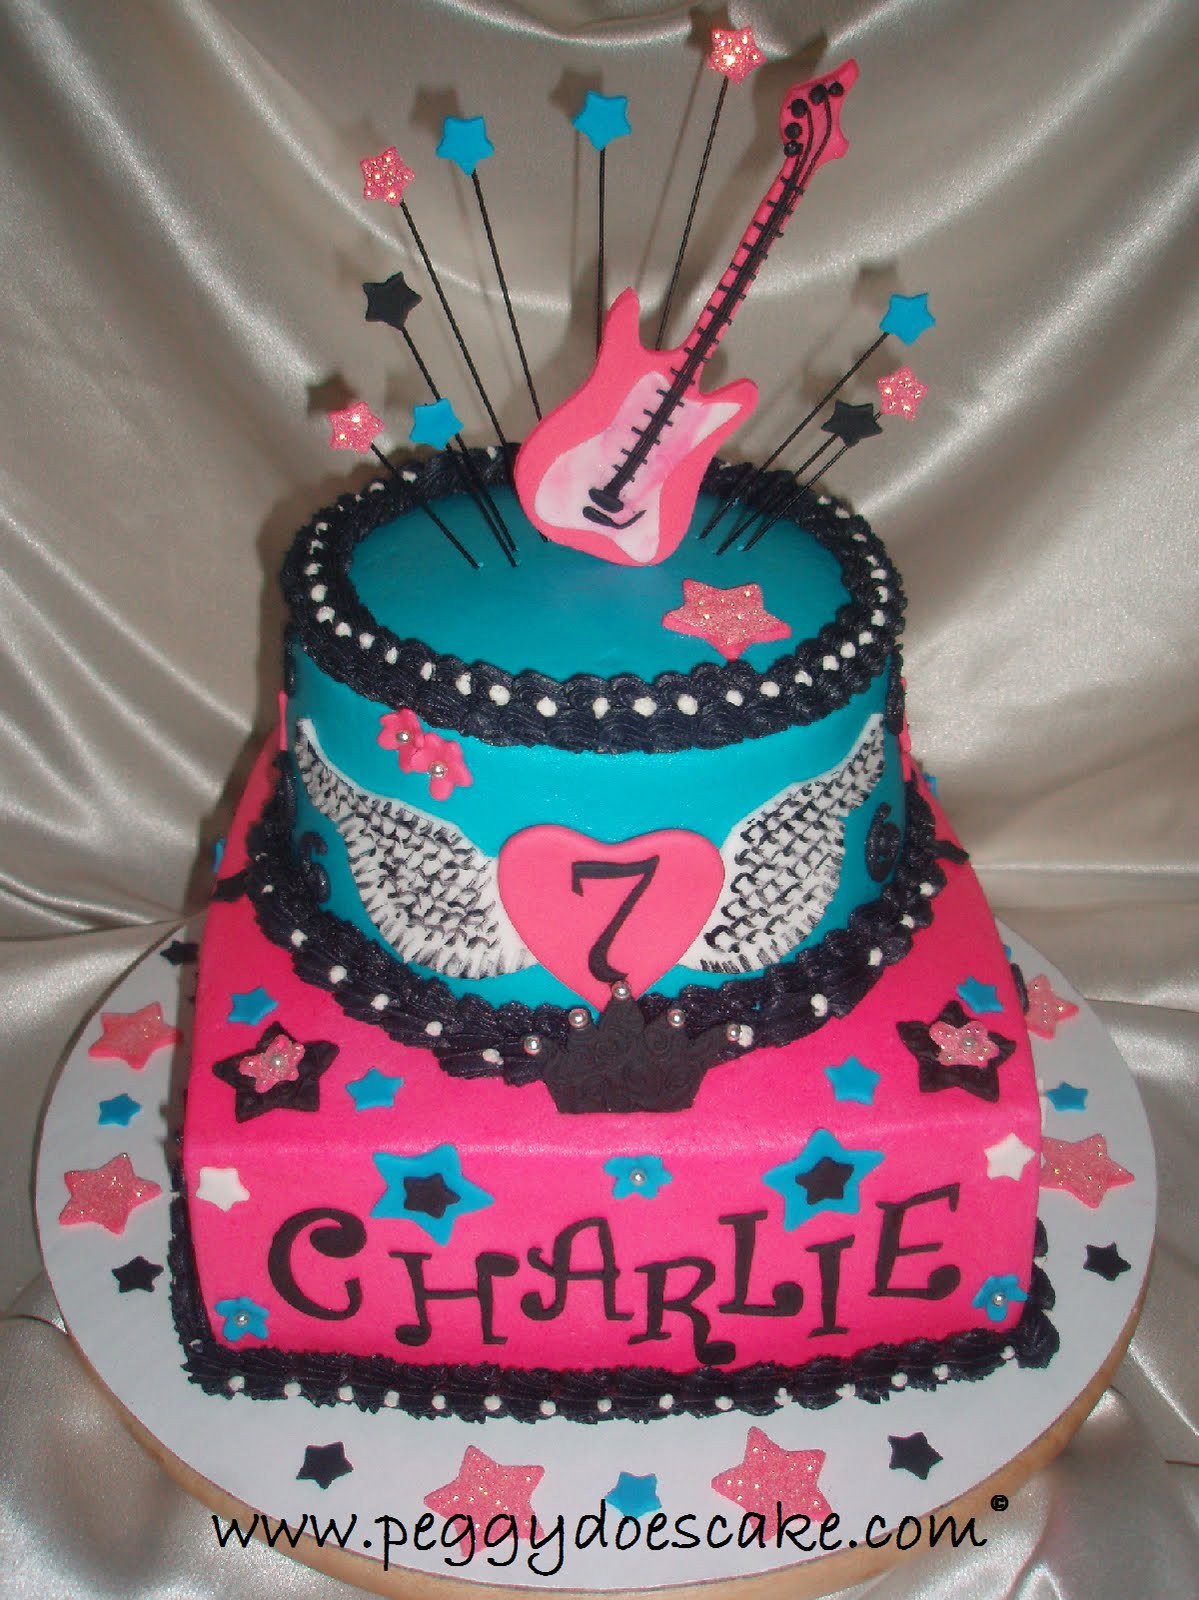 Best ideas about Girls Birthday Cake . Save or Pin Peggy Does Cake Rocker Girl Birthday Cake photos Now.